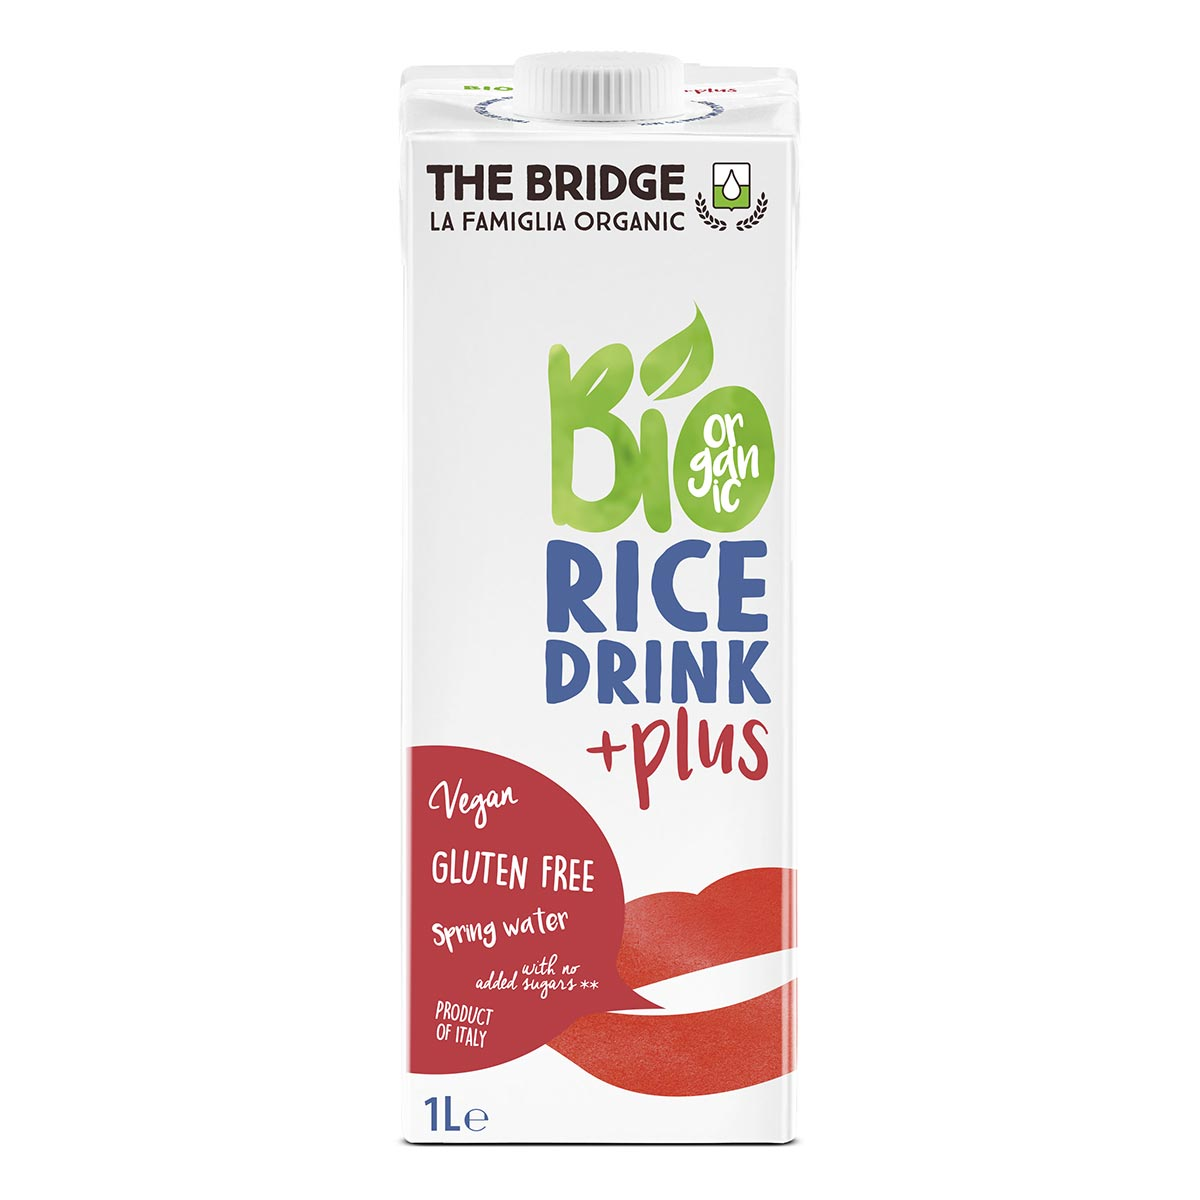 The Bridge - Boisson au riz calcium - 1L